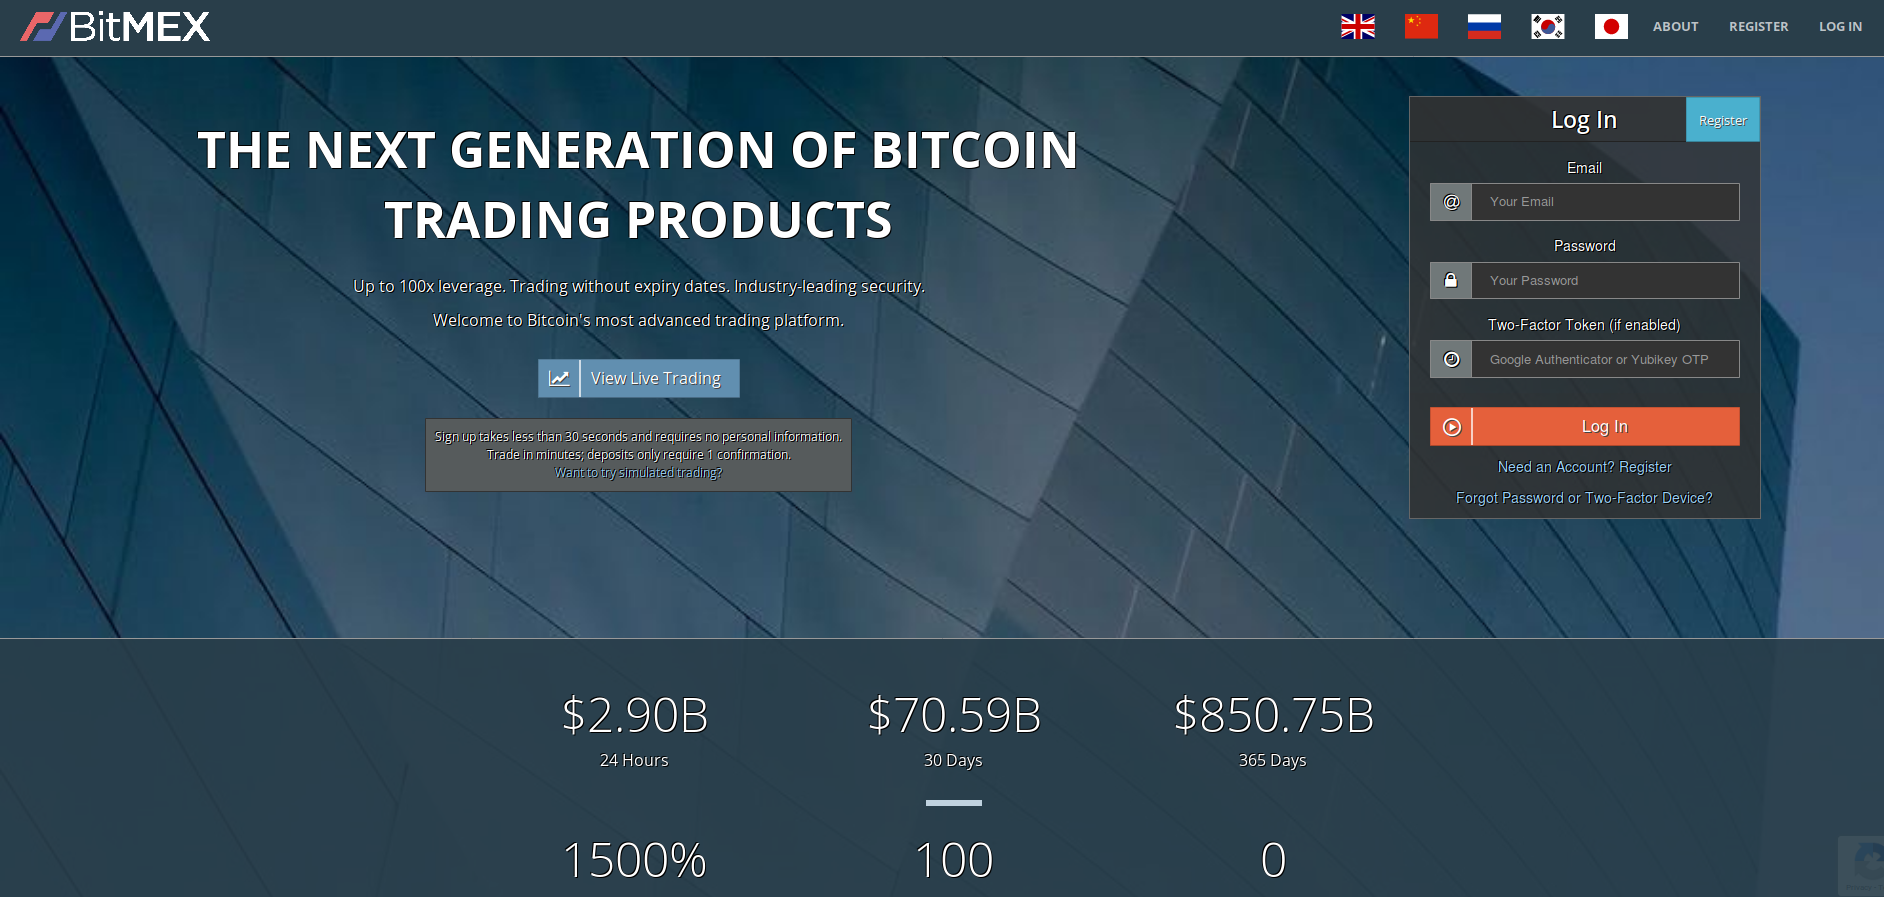 BitMEX Review 2020 – Trading Bitcoin With Leverage on BitMEX.com